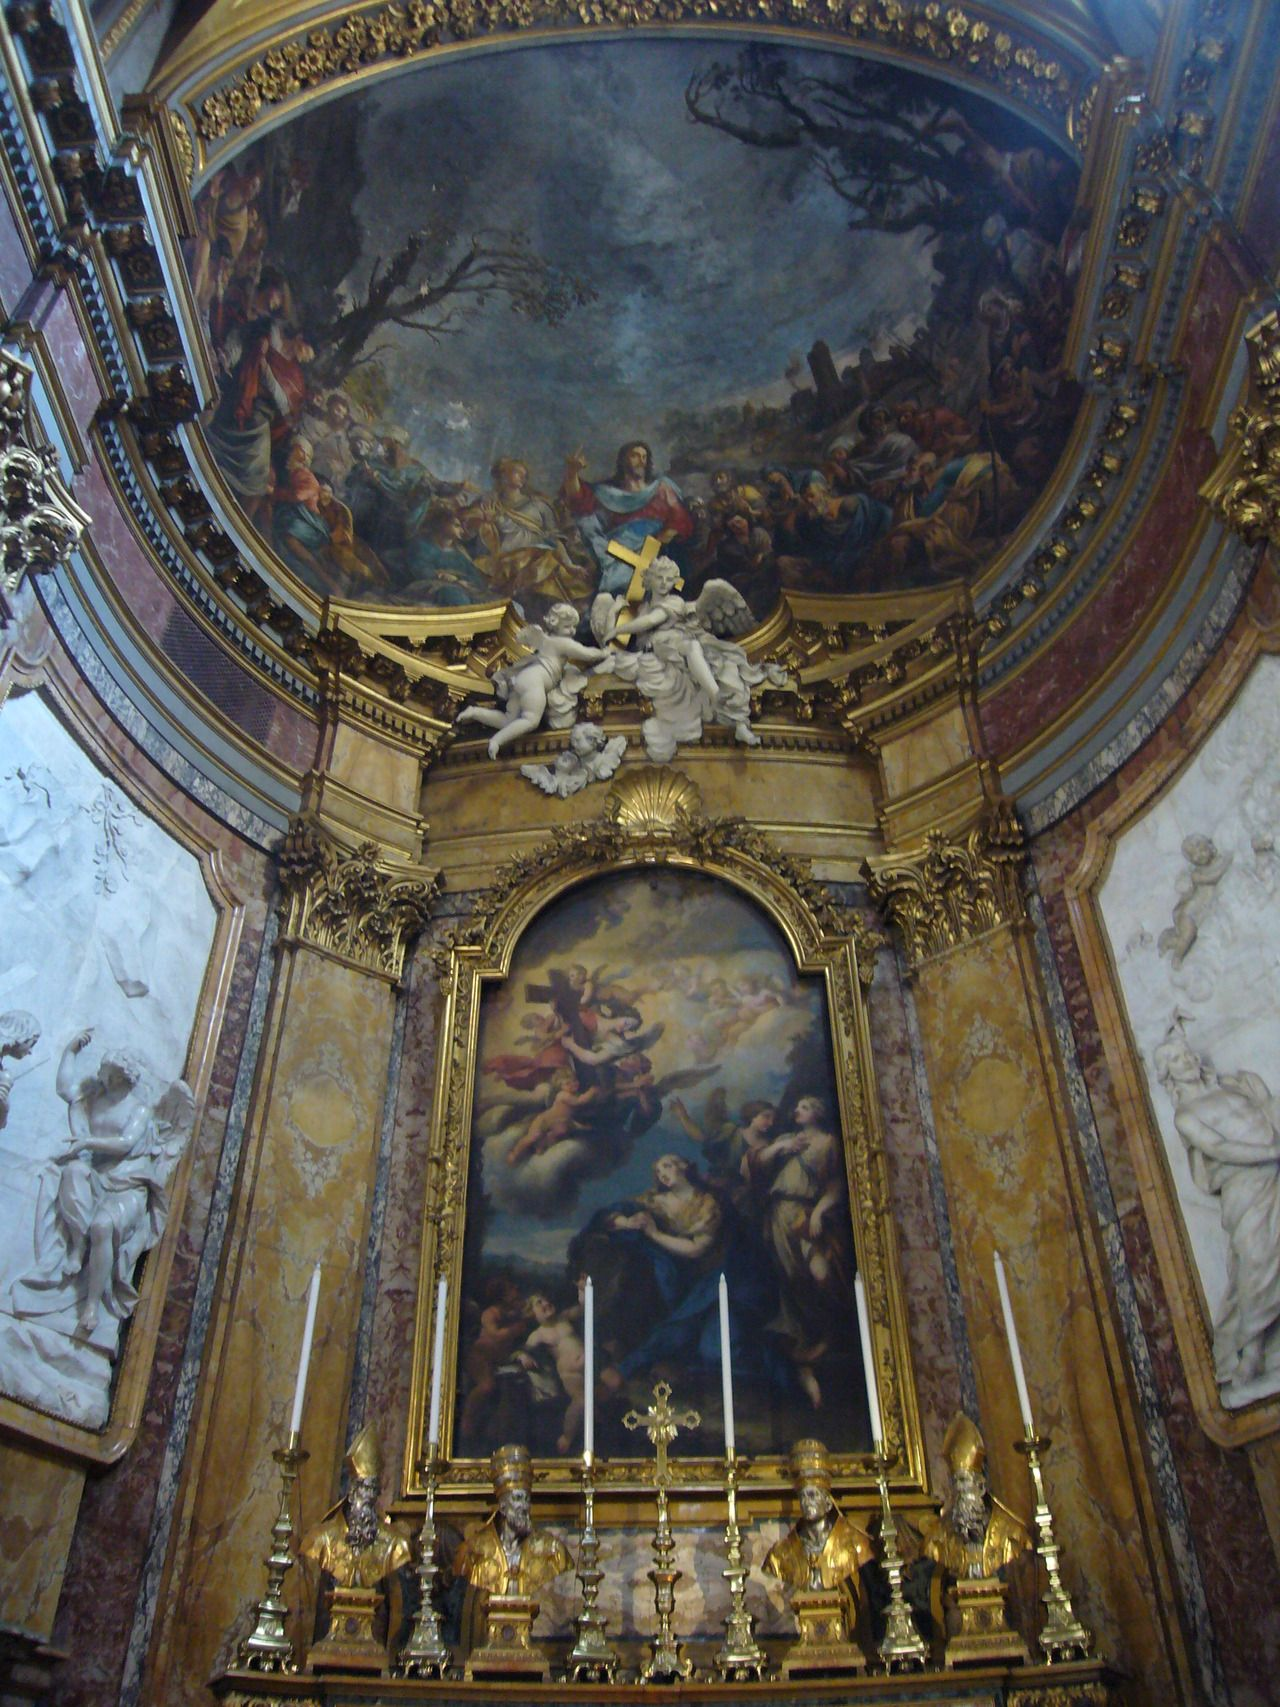 Photo: The Santa Maria Maddalena is a Roman Catholic church in Rome, named after Saint Mary Magdalene. The Order of Saint Camillus de Lellis had a church at that location in Rome since 1586 and in the 17th century started the construction of the current church, which was completed in 1699 in the Baroque style.